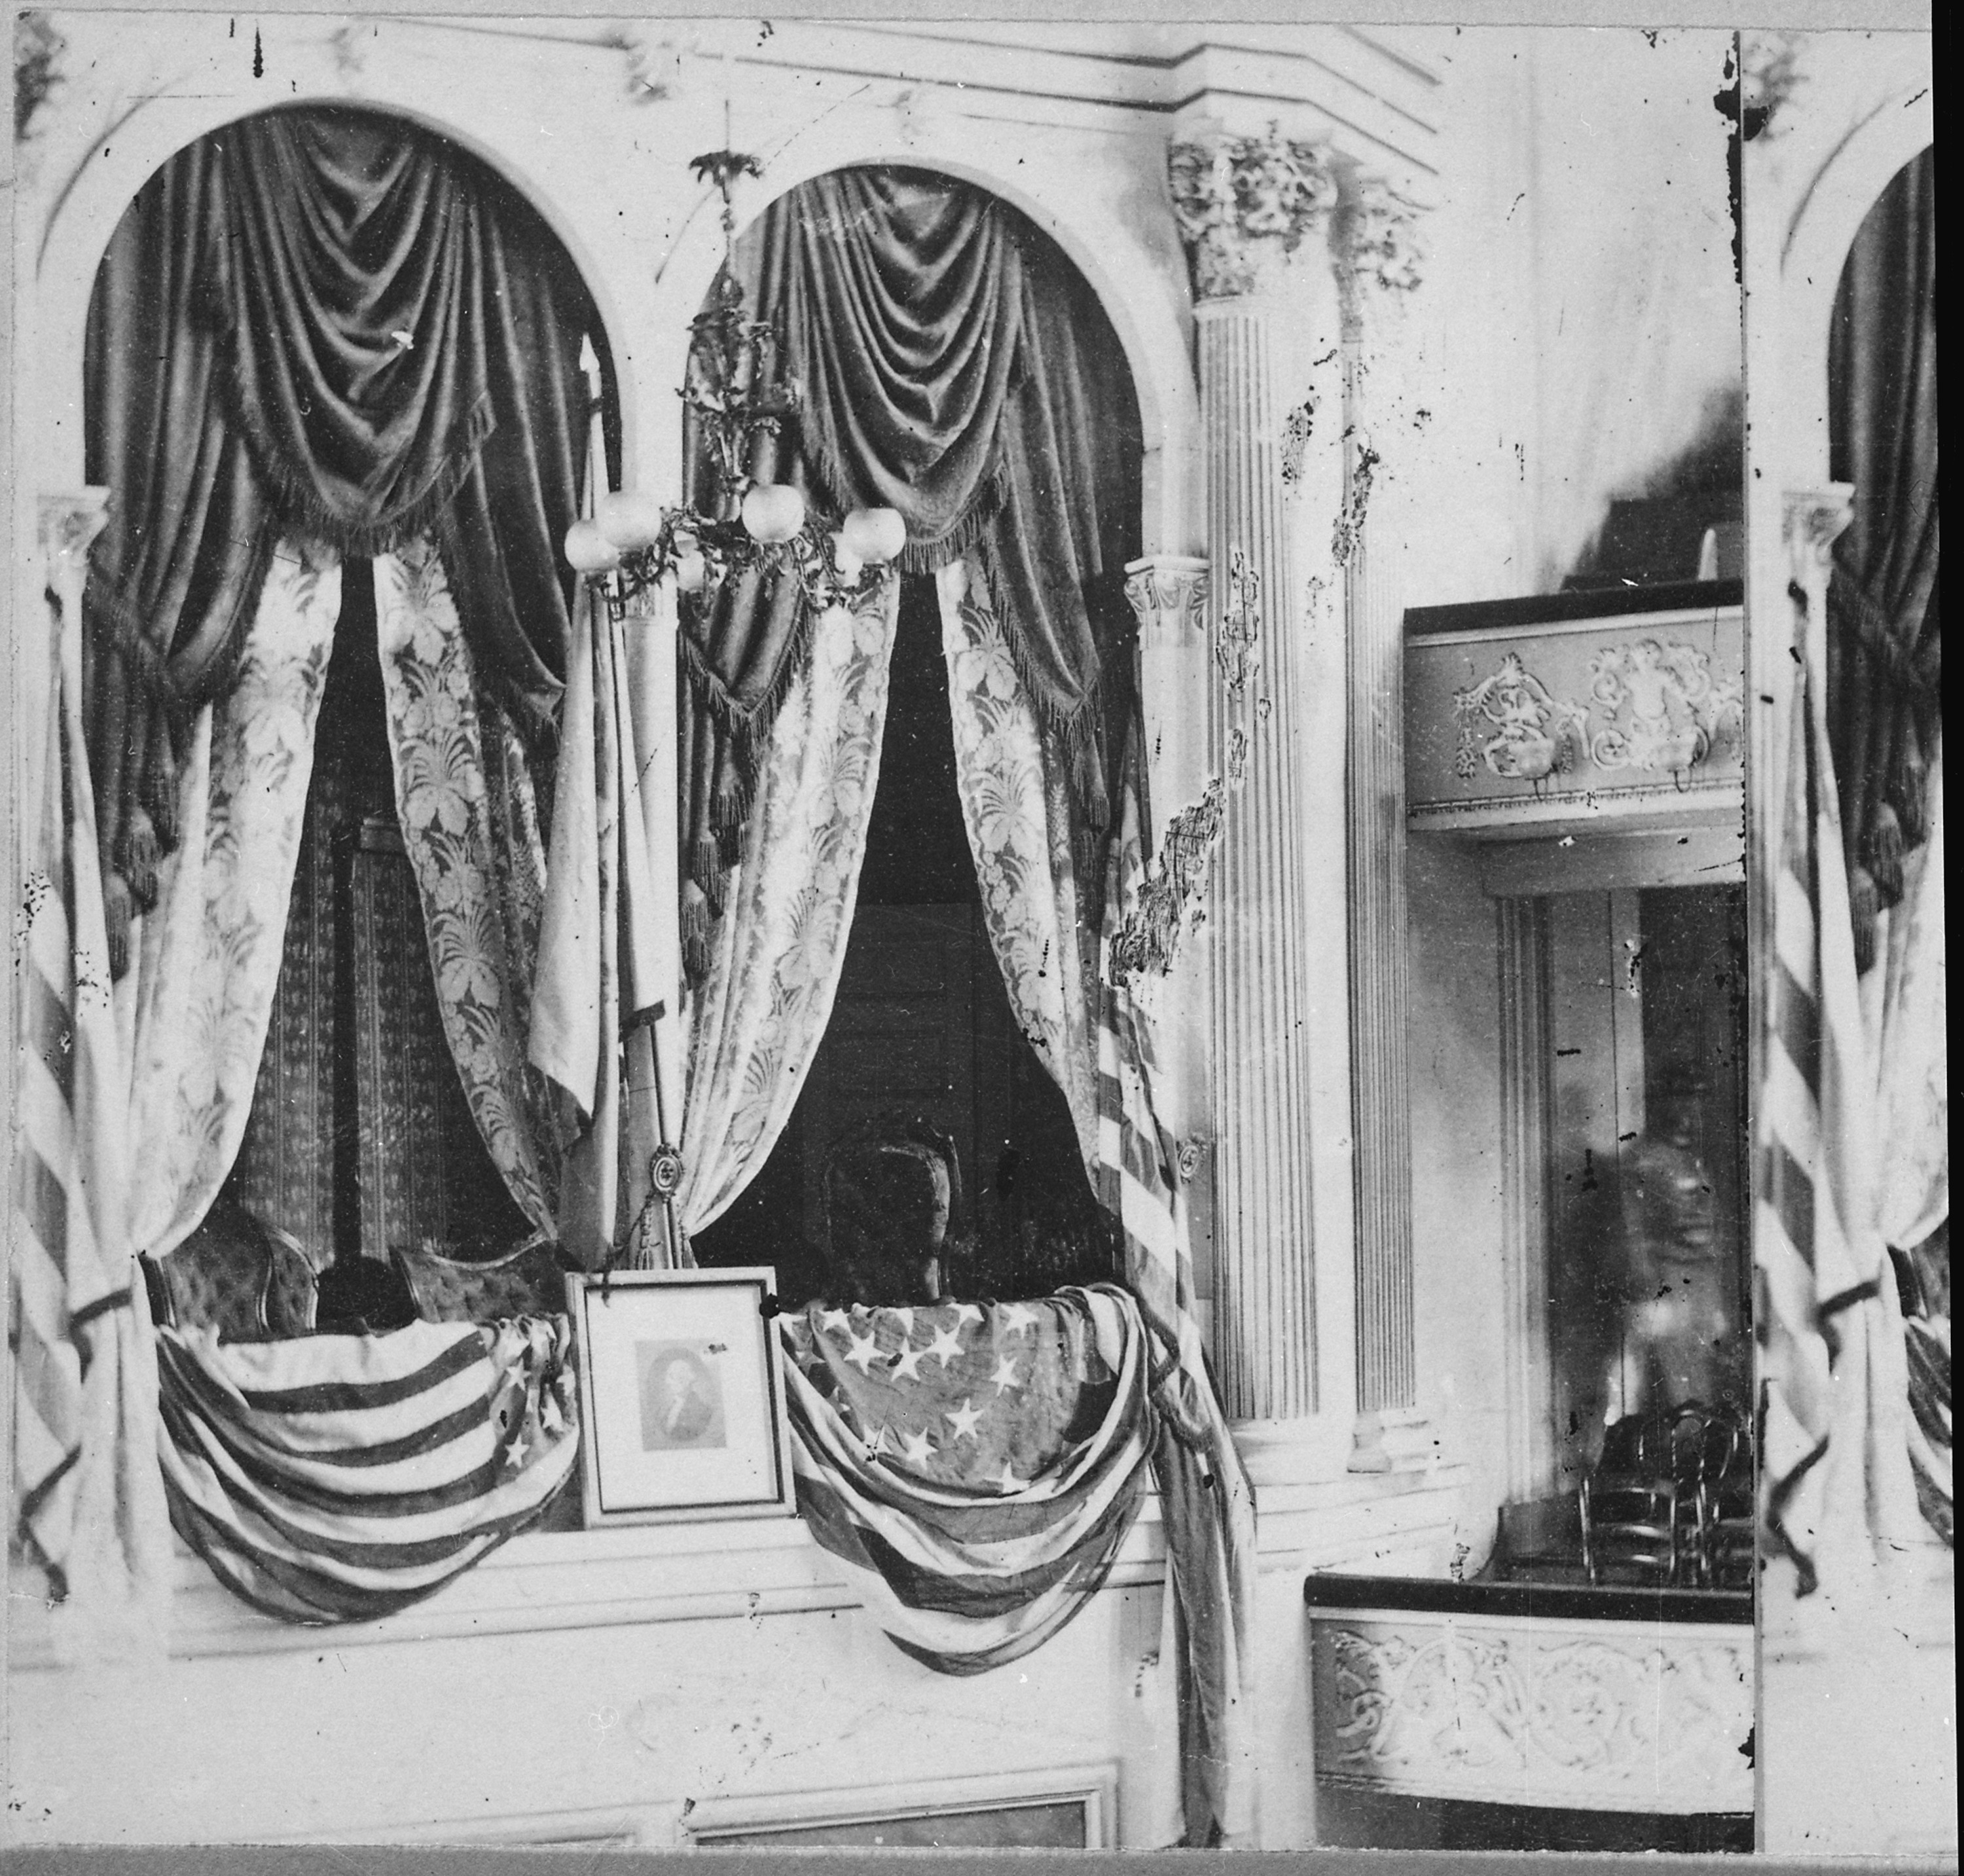 The private box at Ford's Theatre, Washington, D.C., in which Abraham Lincoln was assassinated by John Wilkes Booth on April 14, 1865. Photo taken circa 1865.